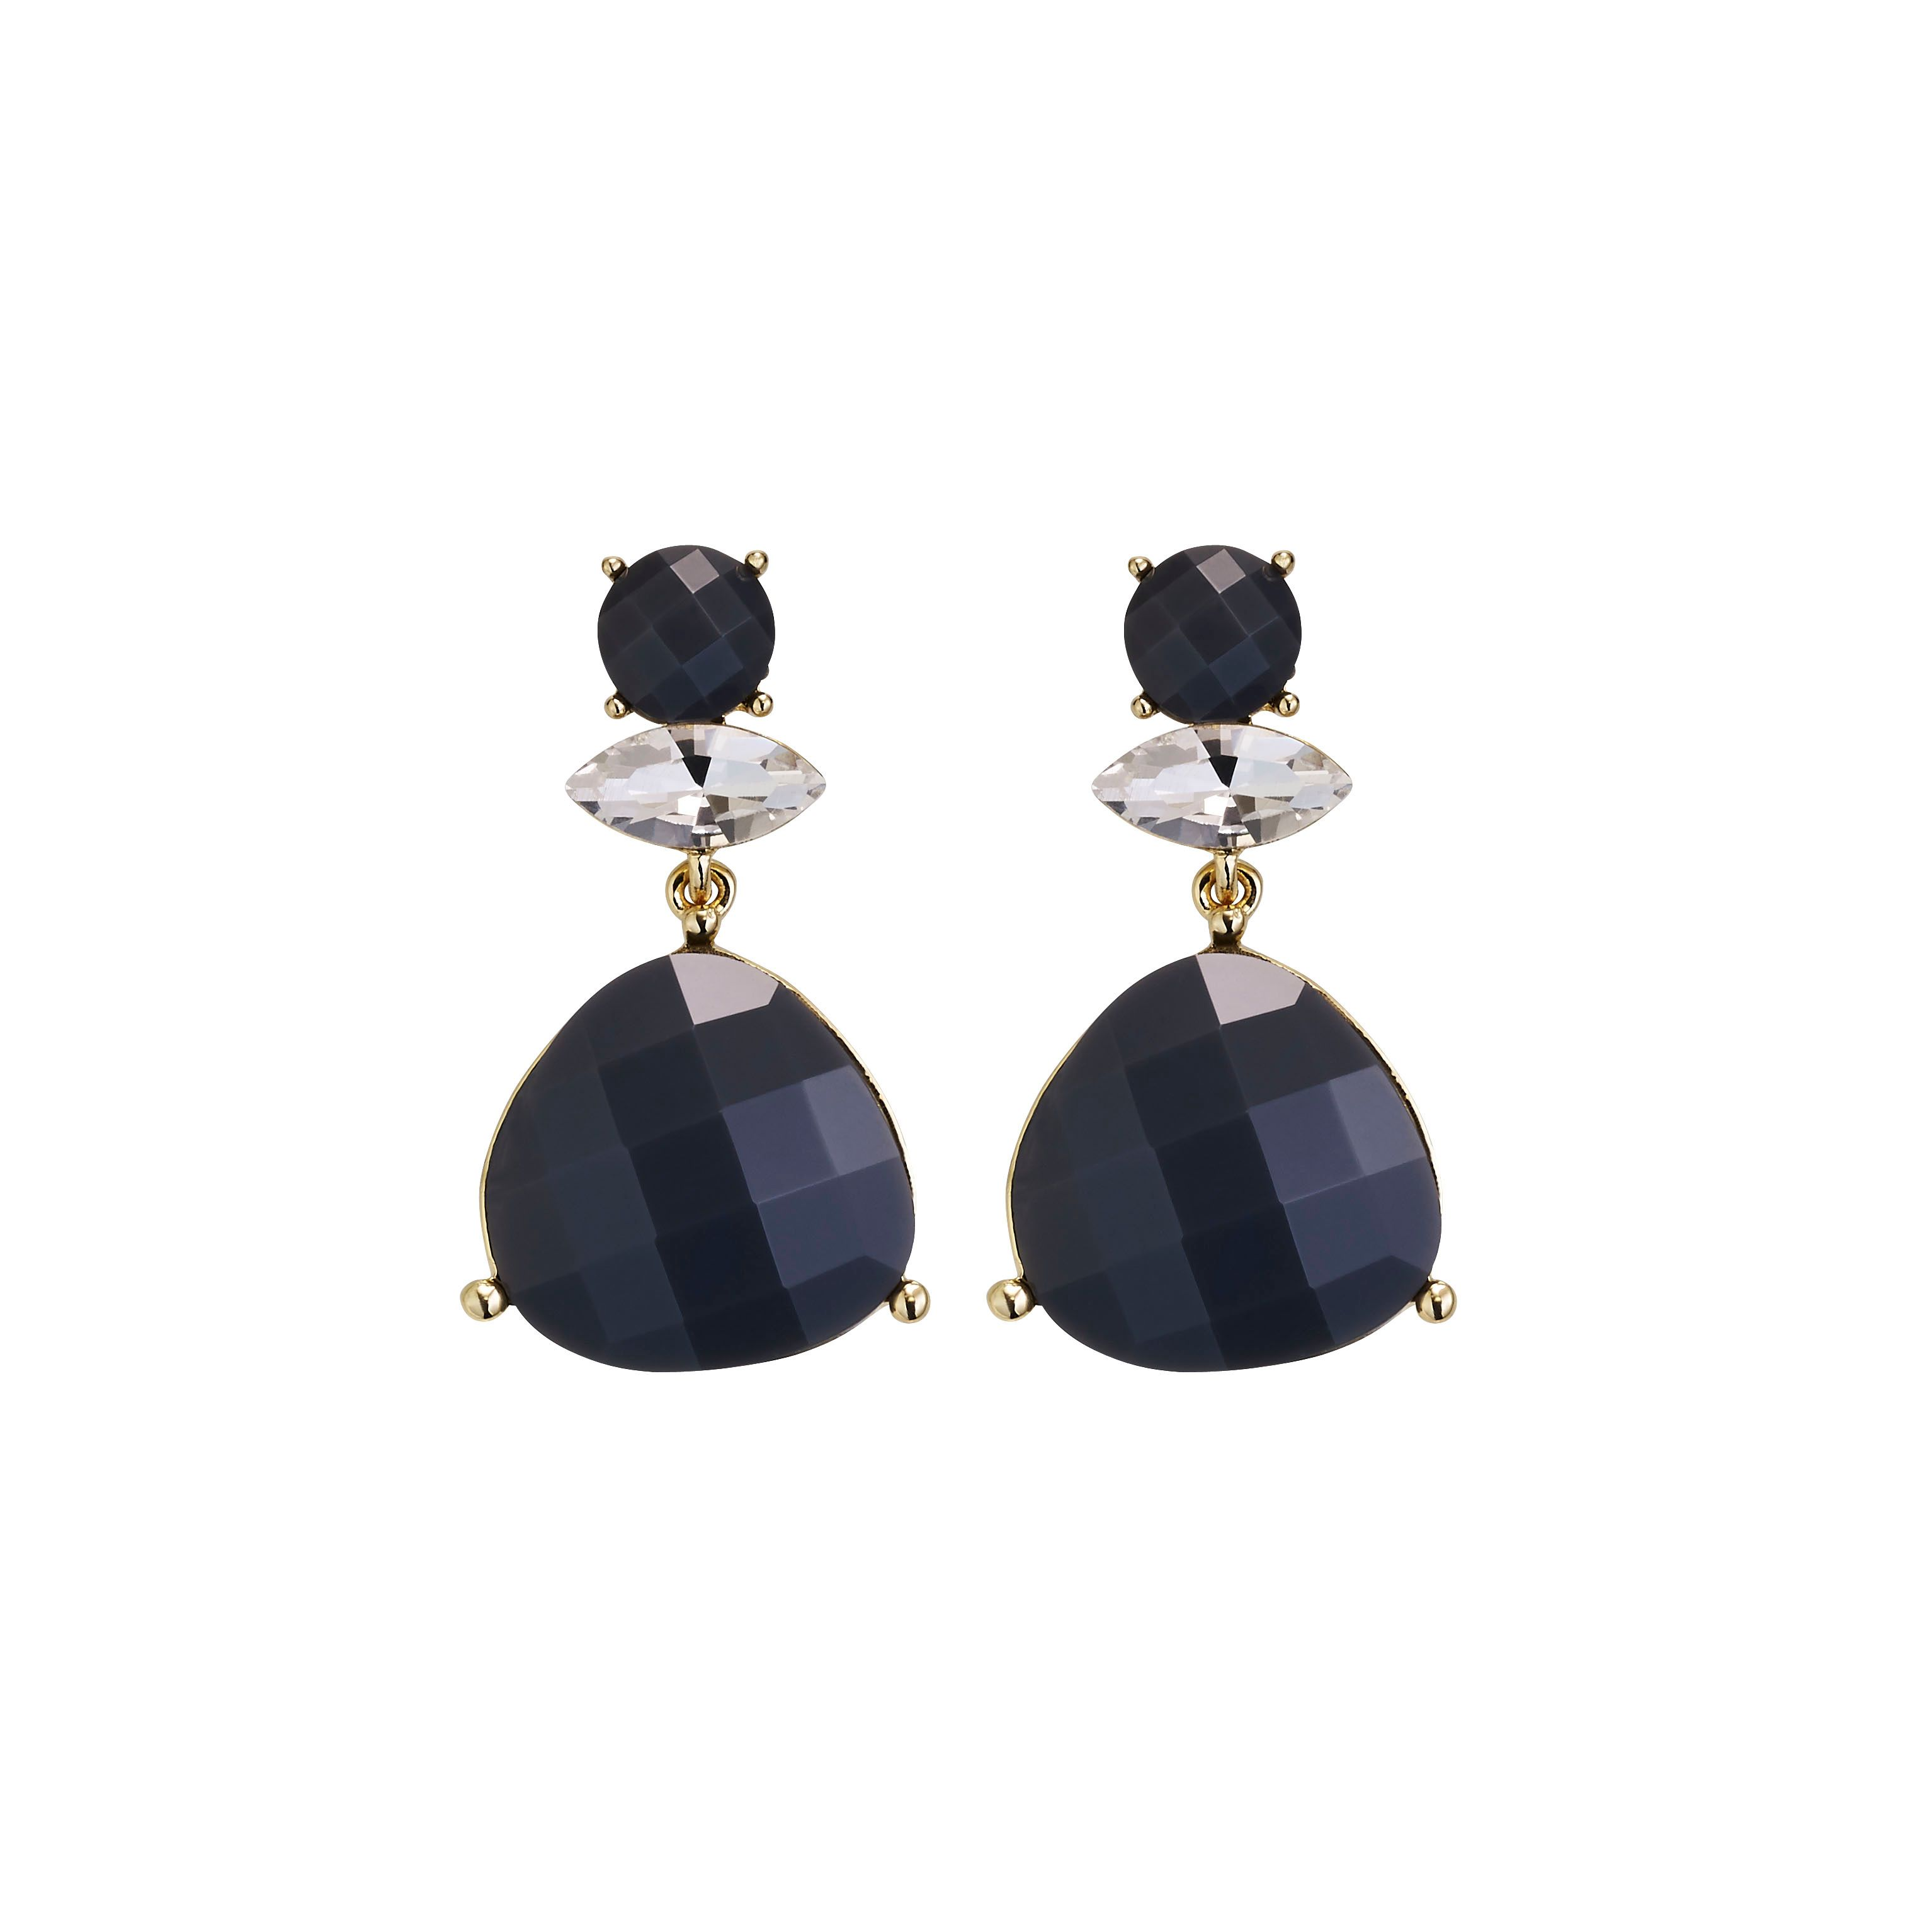 Tivanna grey crystal gold plated earrings